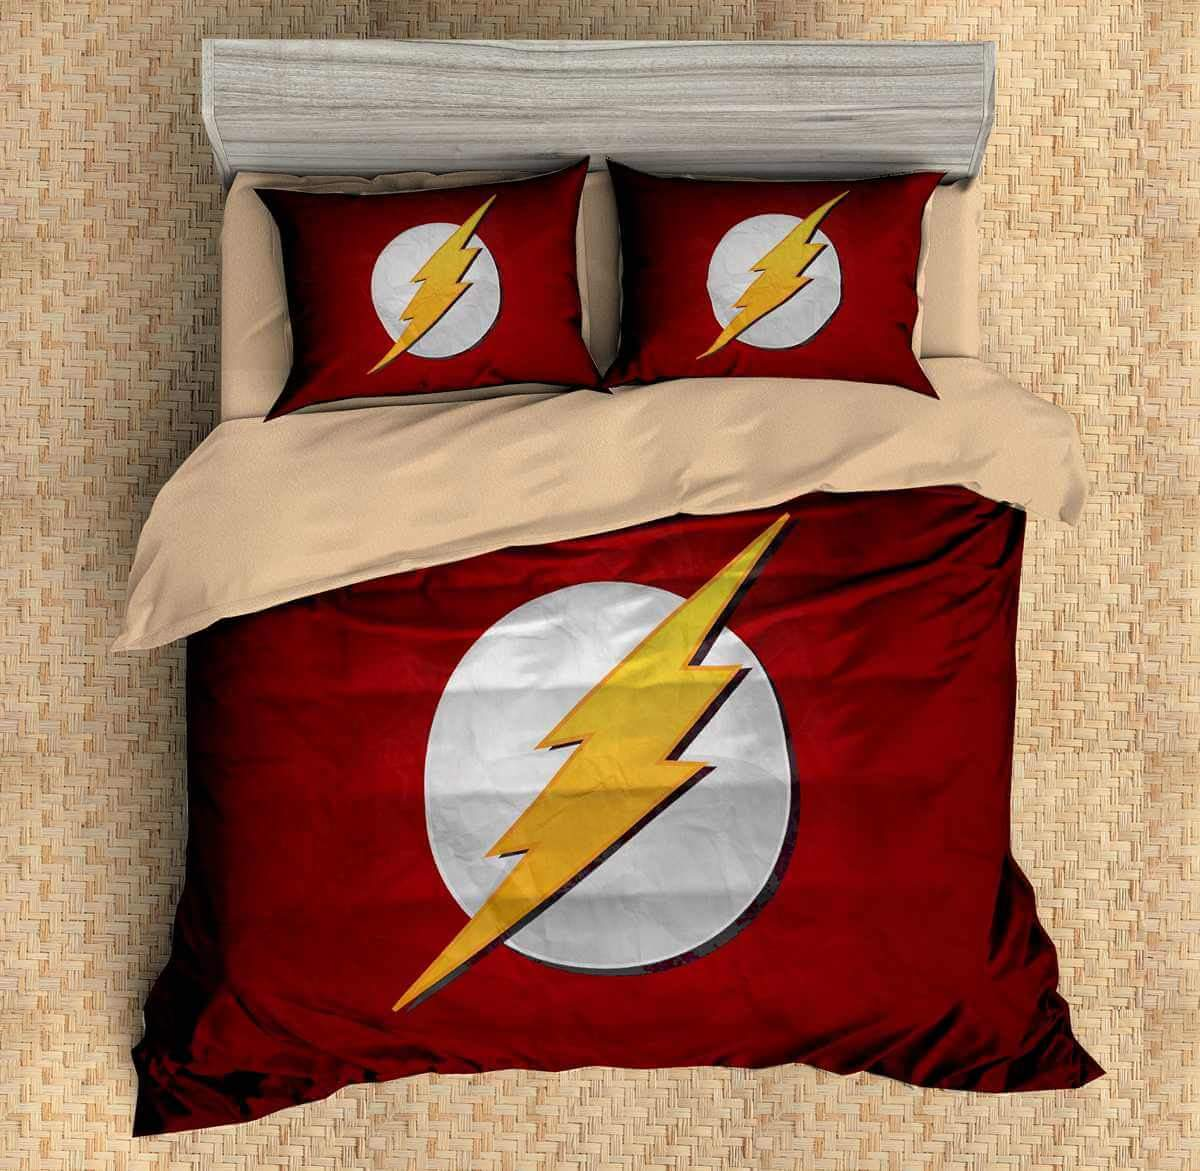 Image of: The Flash Bed Set Red